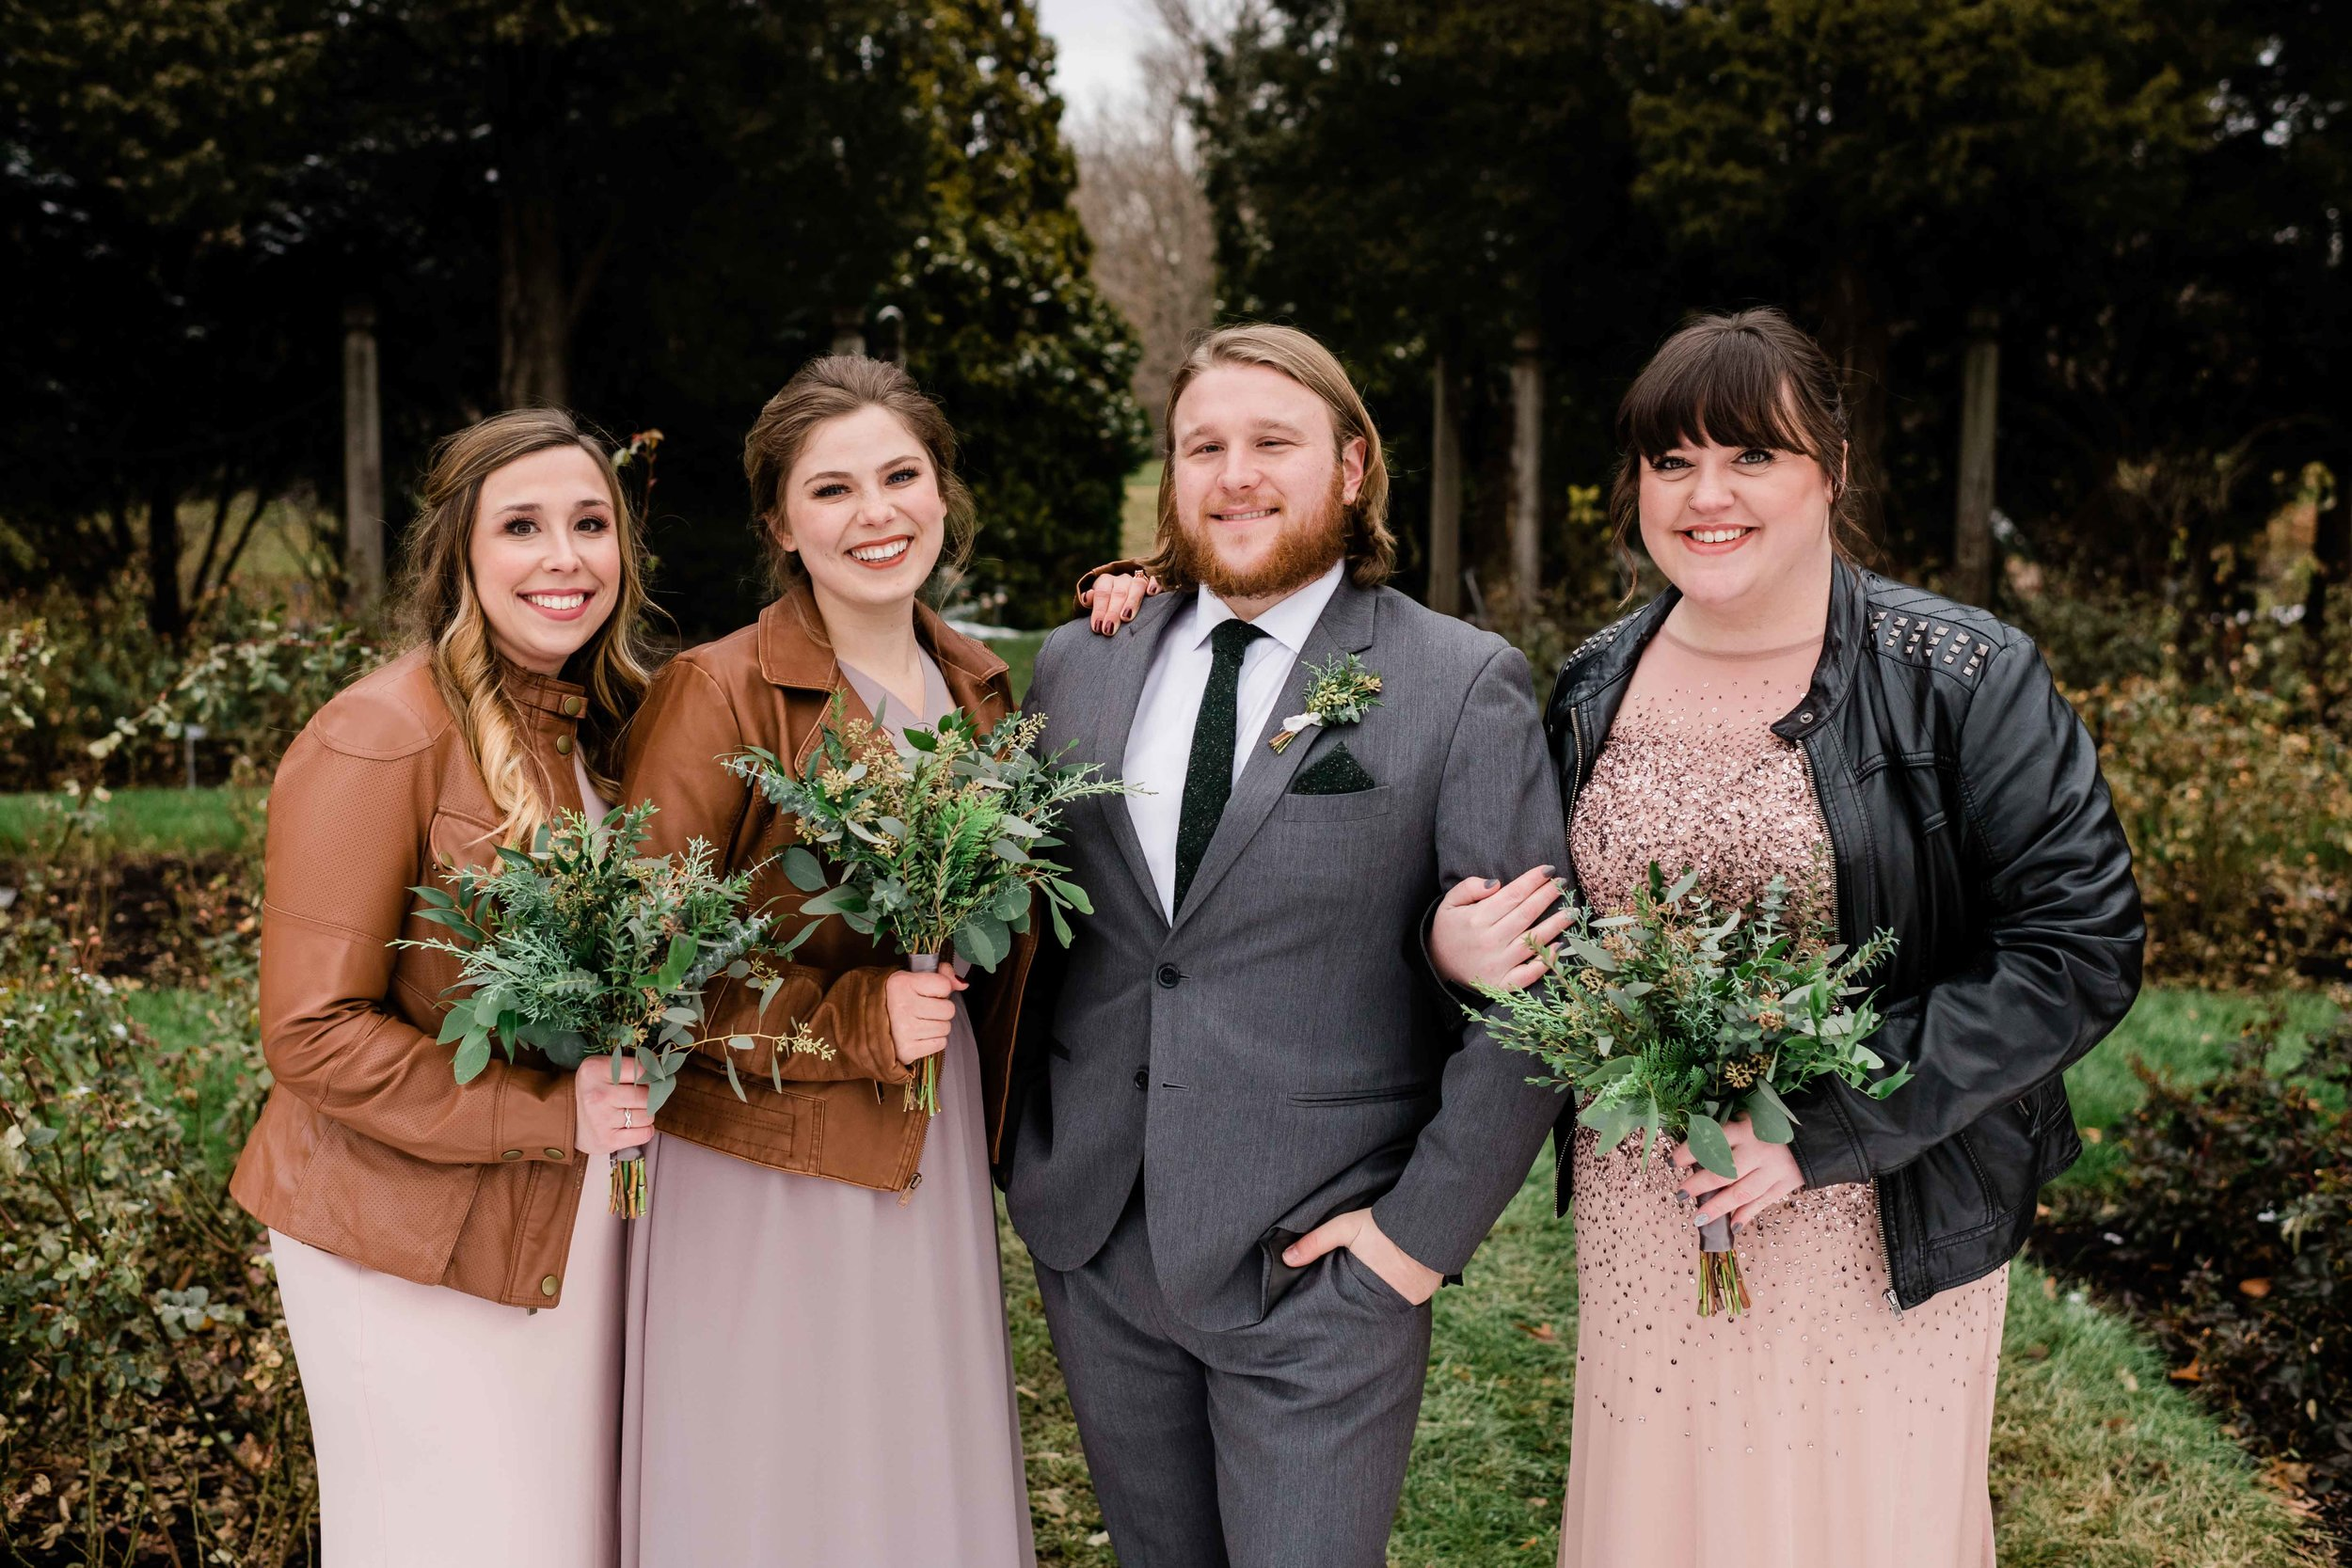 Groom poses with bridesmaids